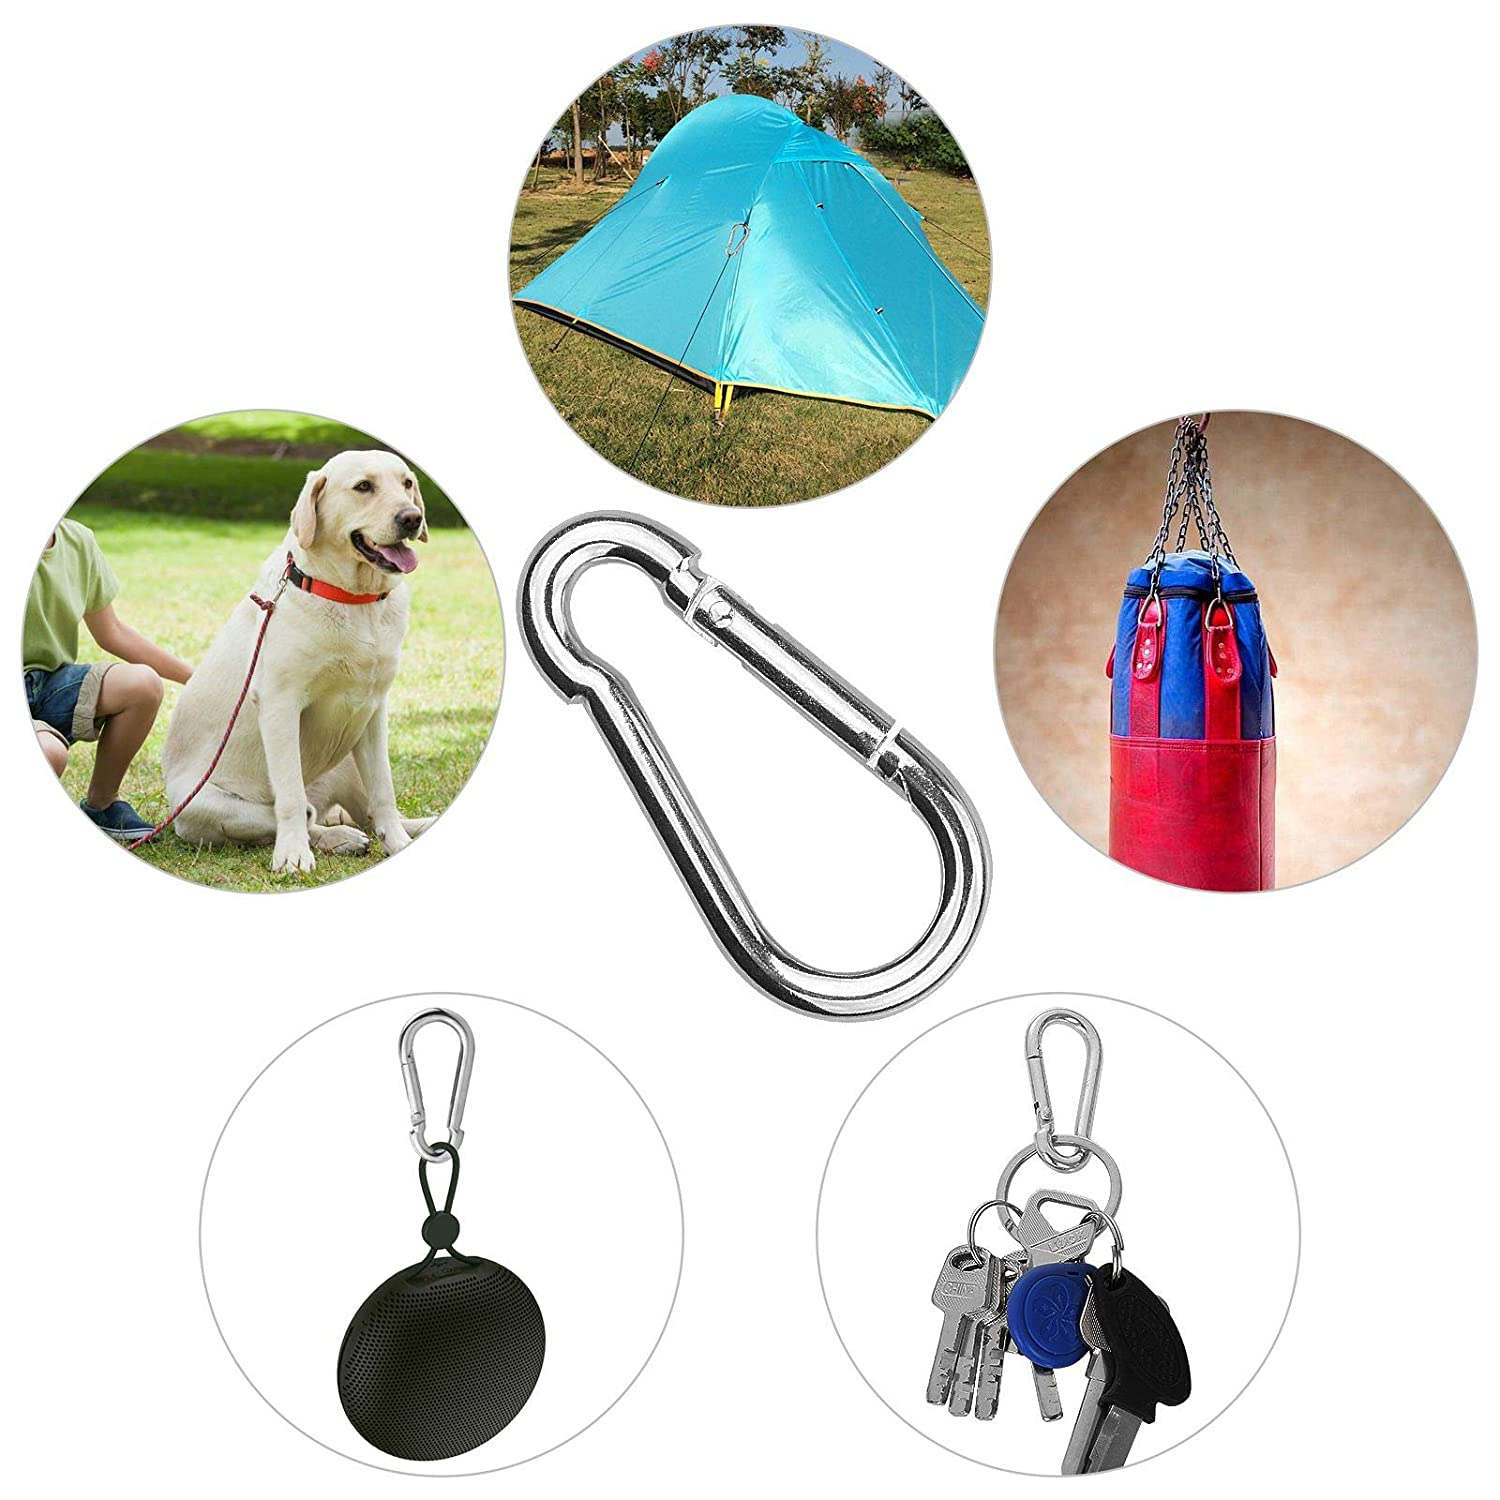 Carabiner Clip Galvanized Steel Small M5 Carabiners for Dog Leash /& Harness Outdoor and Gym 50 Pack Spring Snap Hook Hiking Silver Quick Link Clip Keychain for Camping